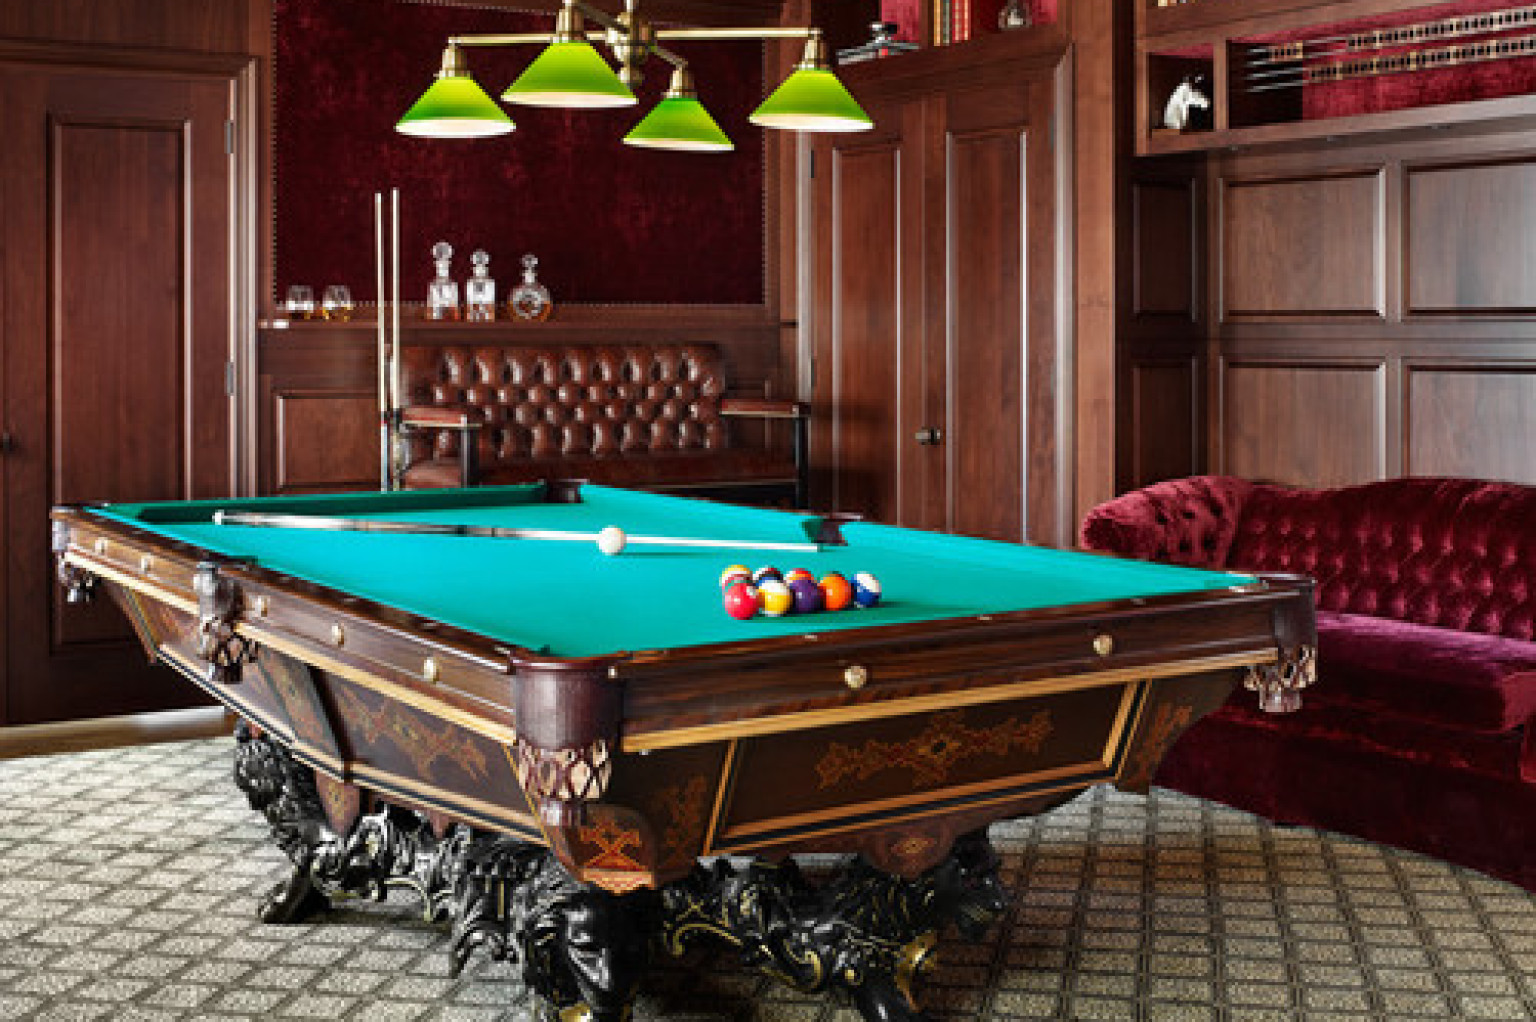 15 Homes With Amazing Pool Tables That Are Anything But An Eyesore ...